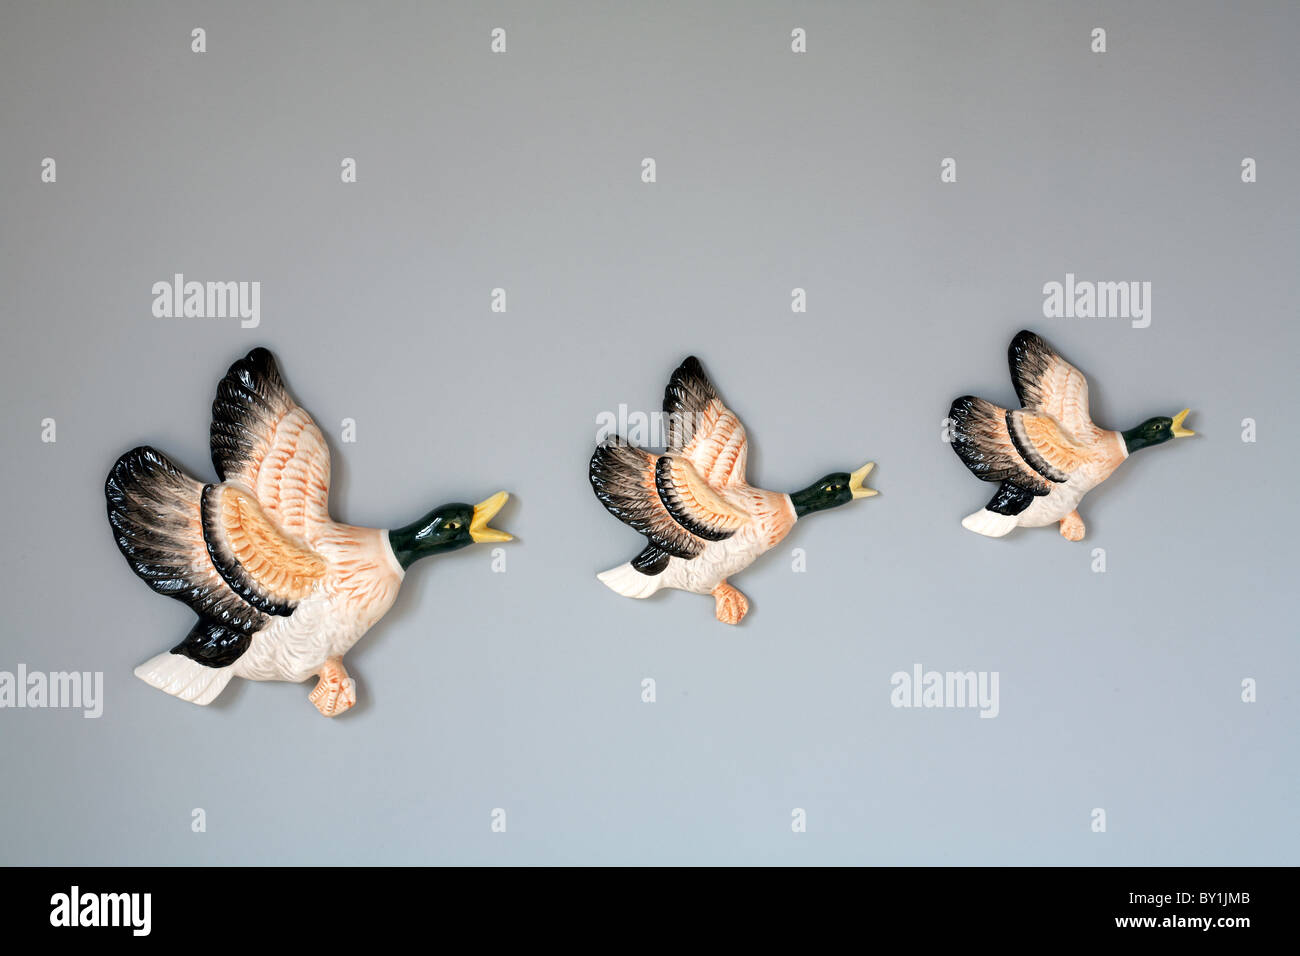 Flying duck ornaments on wall - Stock Image